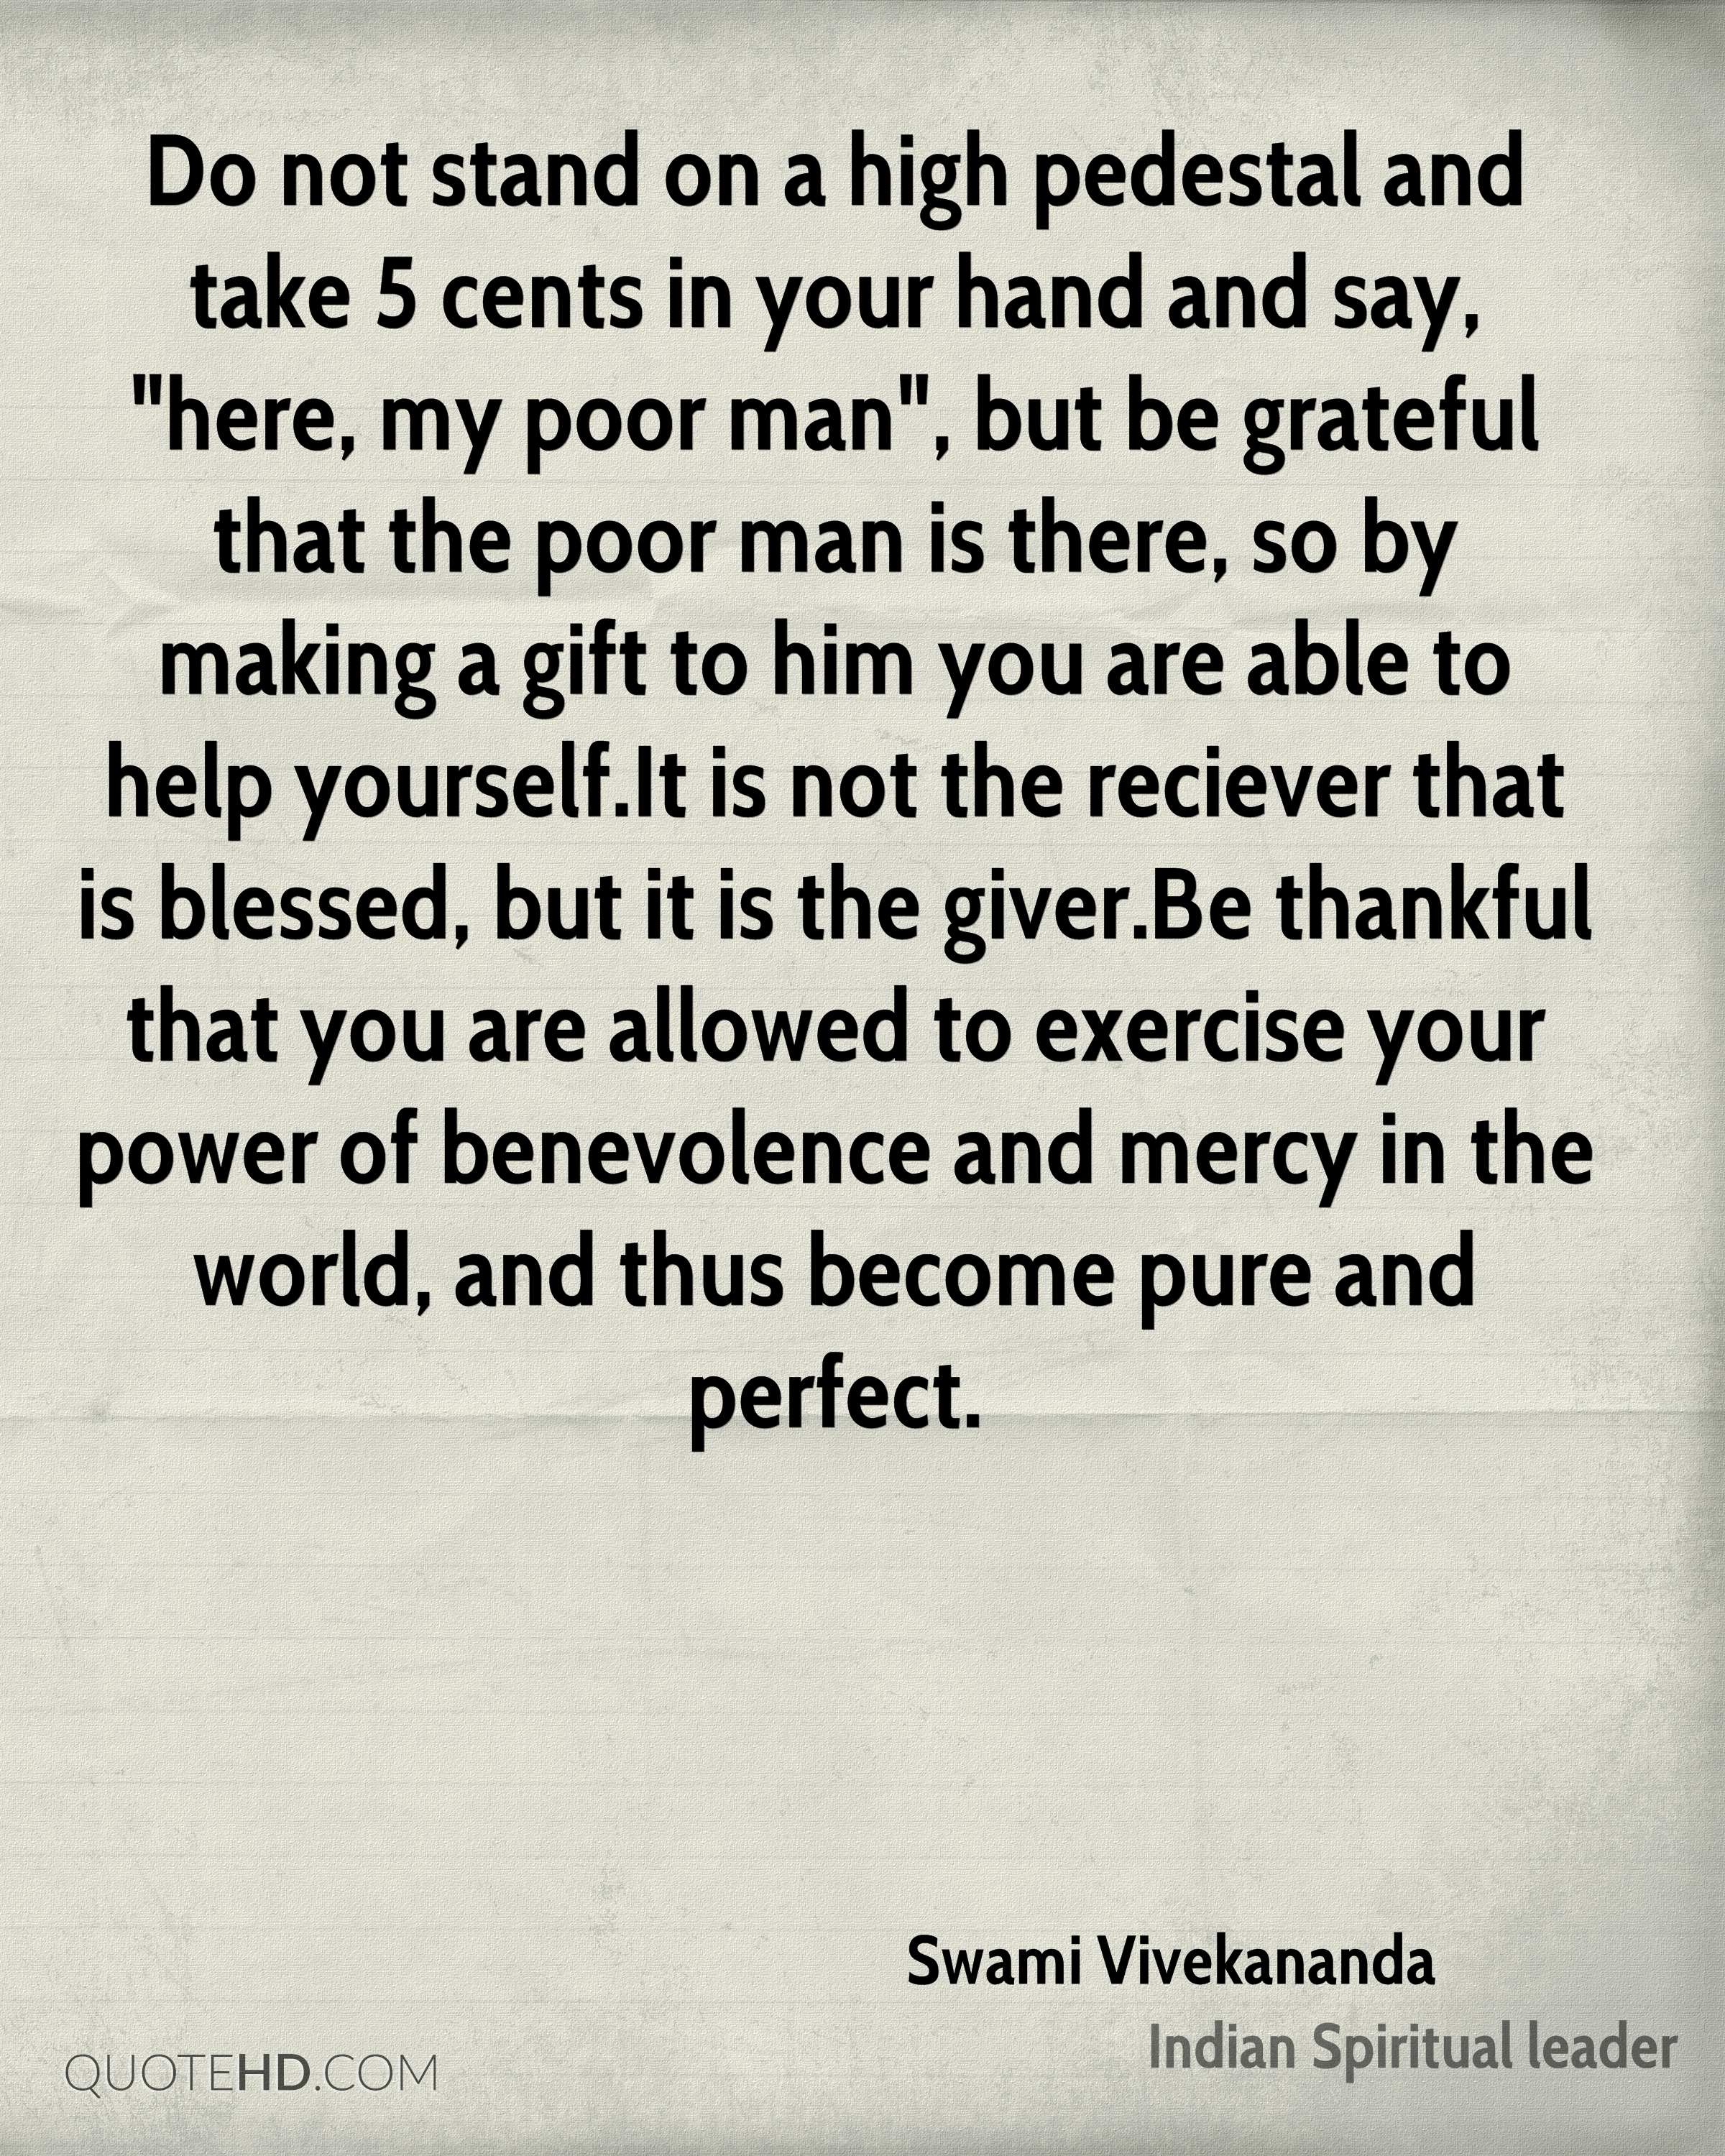 """Do not stand on a high pedestal and take 5 cents in your hand and say, """"here, my poor man"""", but be grateful that the poor man is there, so by making a gift to him you are able to help yourself.It is not the reciever that is blessed, but it is the giver.Be thankful that you are allowed to exercise your power of benevolence and mercy in the world, and thus become pure and perfect."""